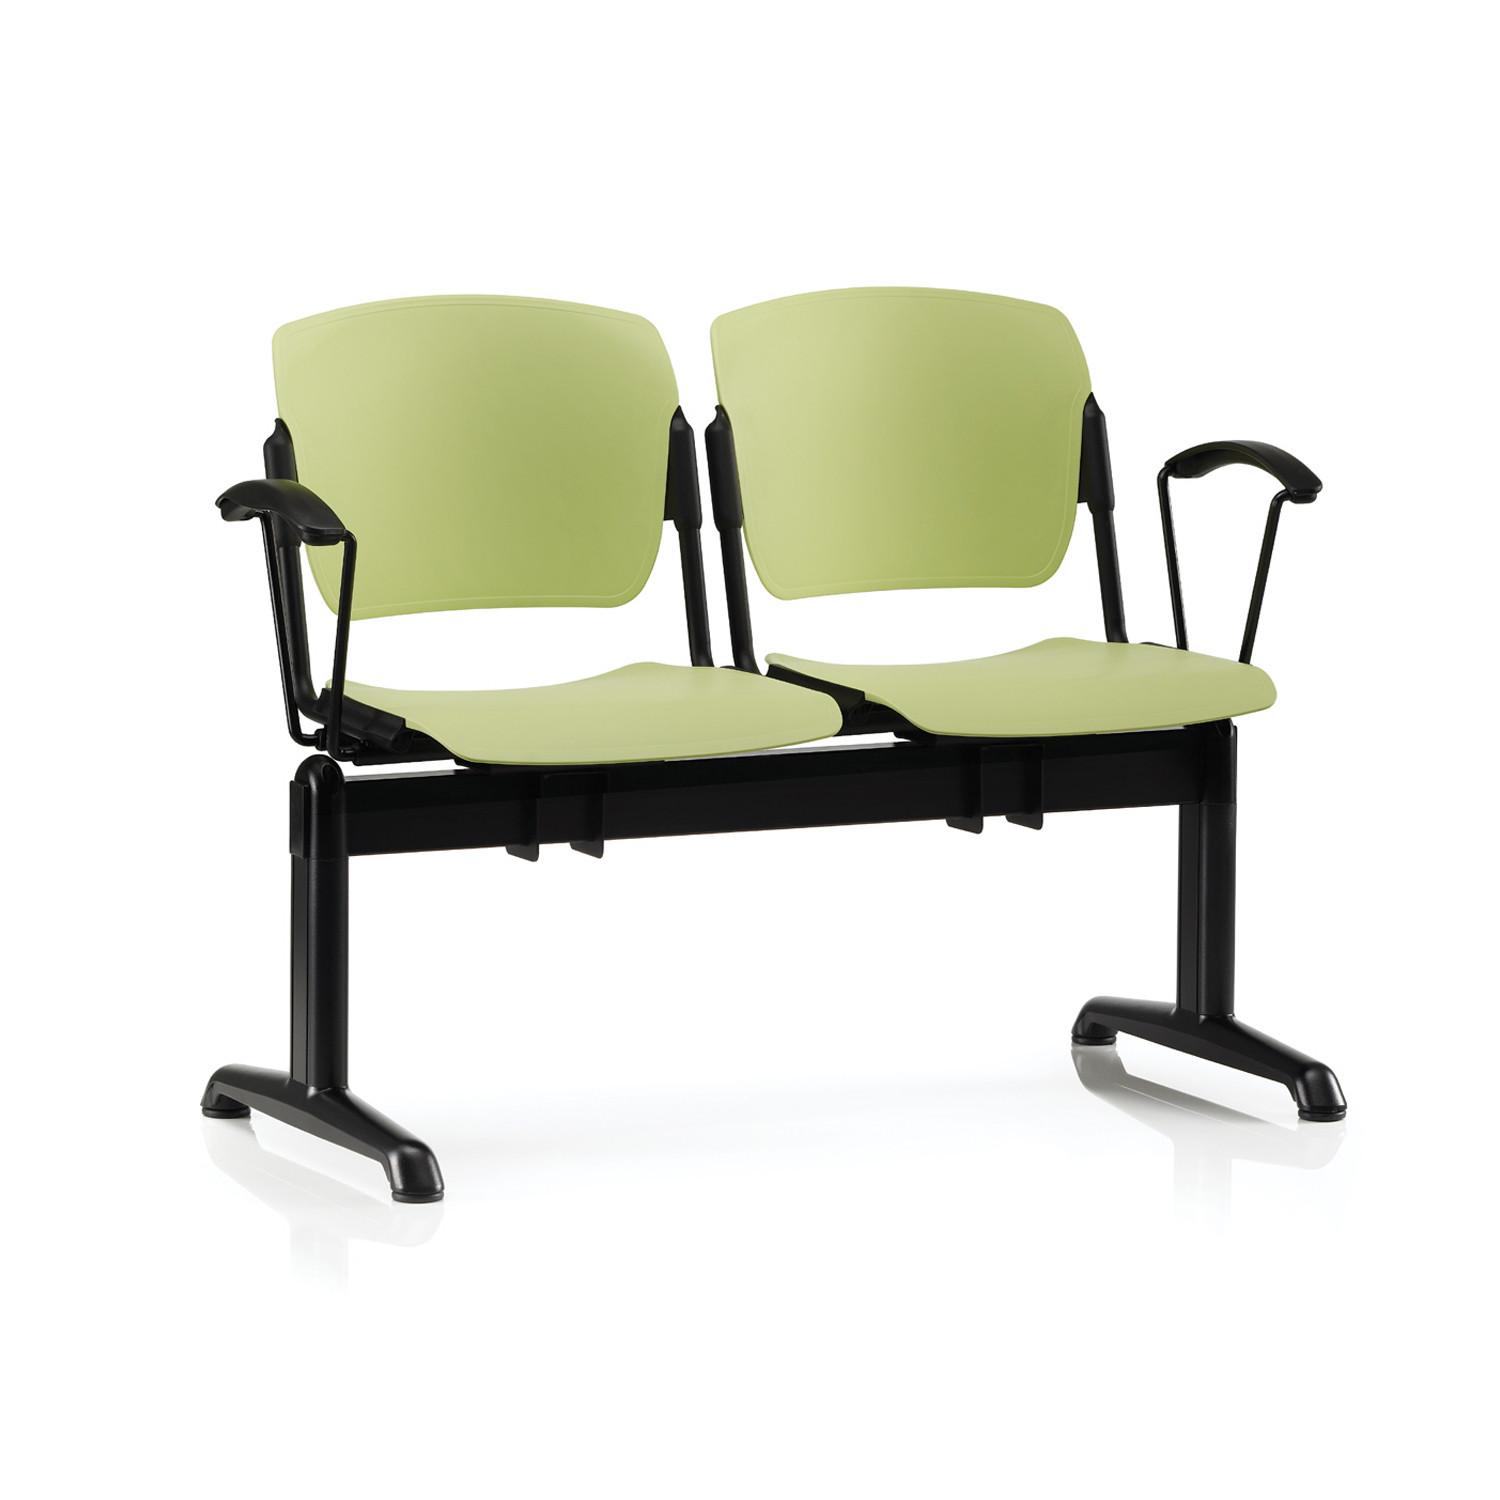 Series 8100 Office Beam Seating